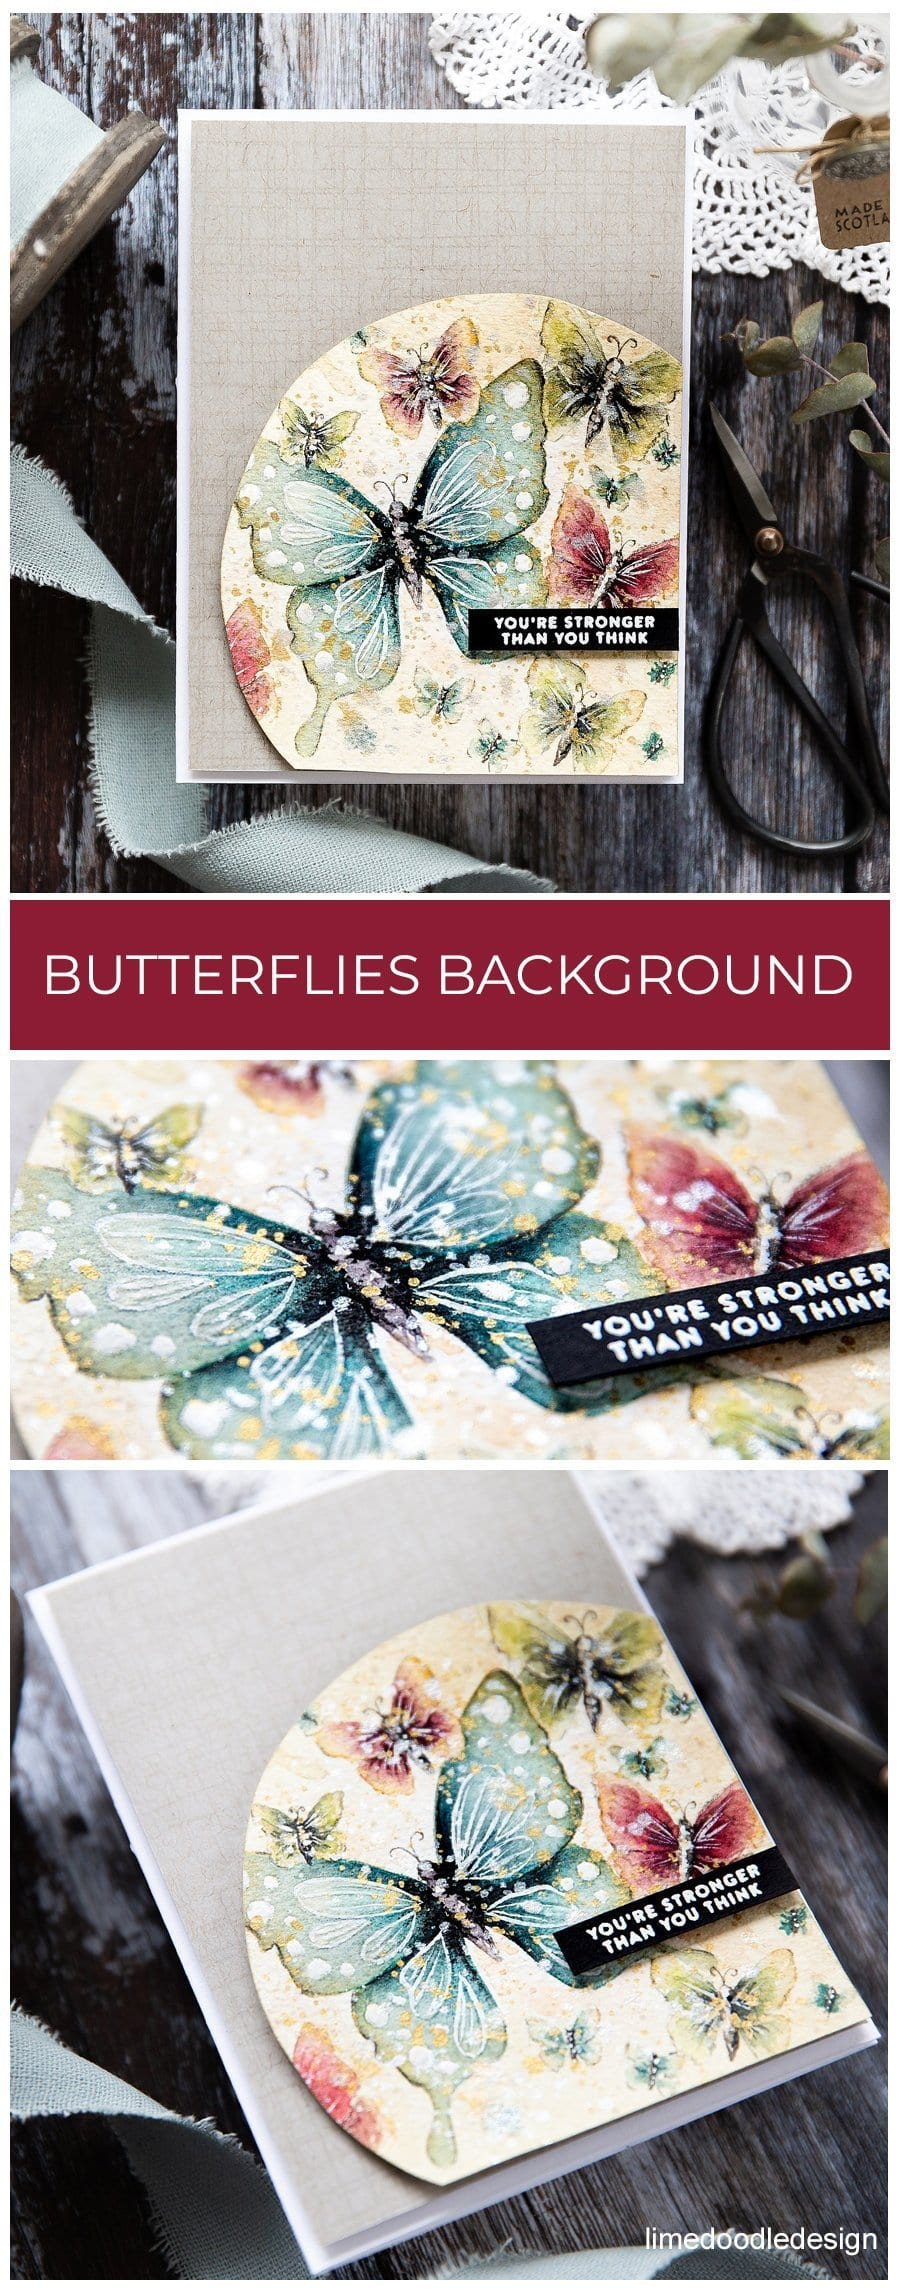 Watercoloured butterfly background, handmade card by Debby Hughes using supplies from Simon Says Stamp. Find out more here: https://limedoodledesign.com/2019/05/watercoloured-butterfly-background/